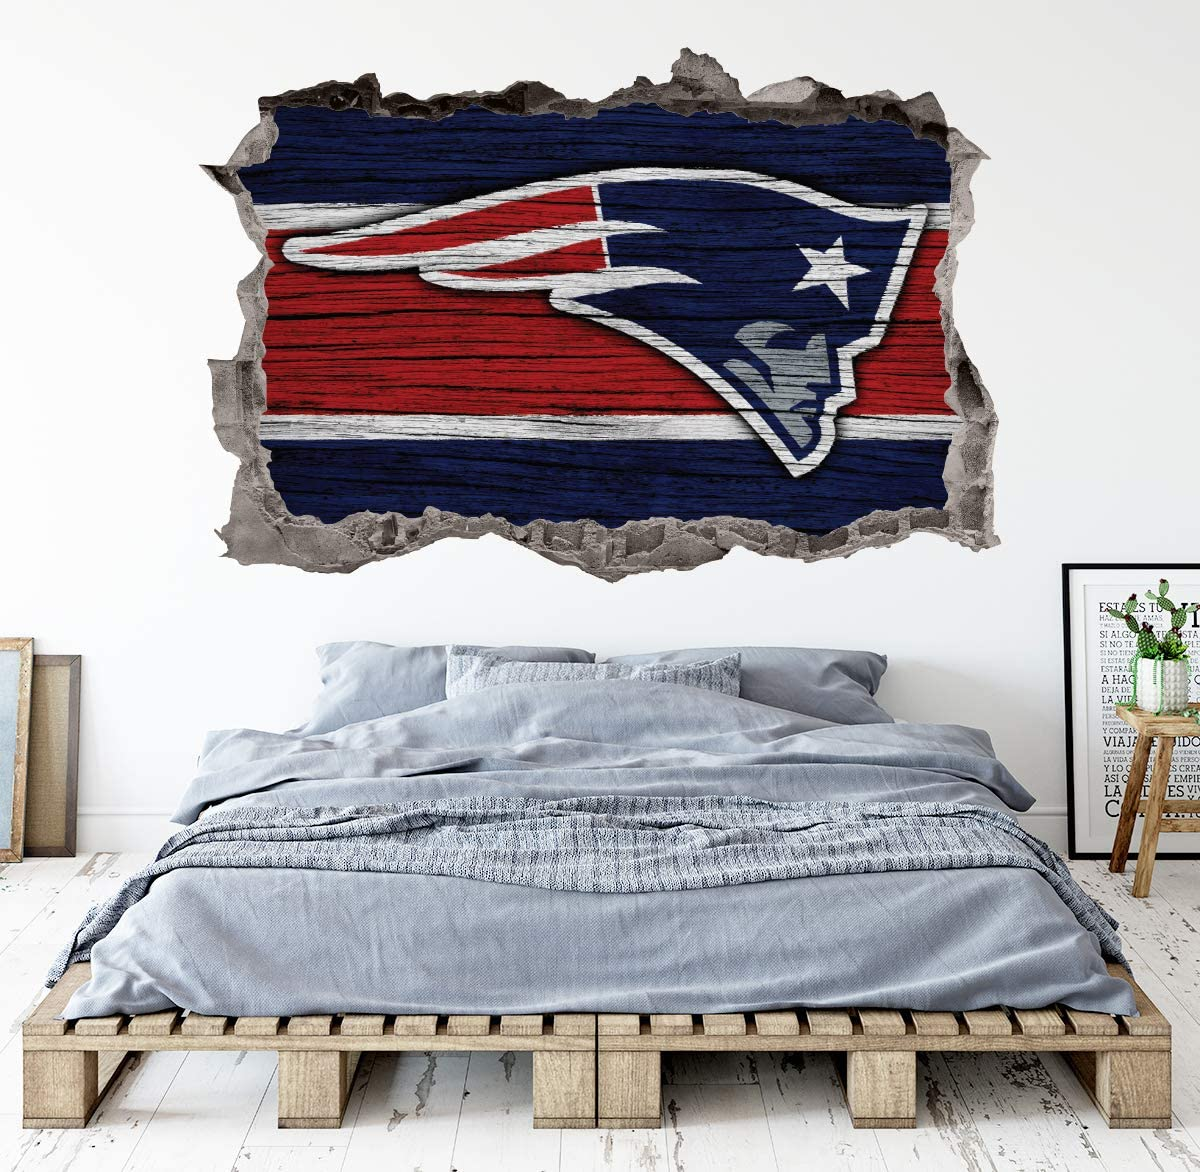 Football New England Team Wall Decals Art 3D Smashed Custom Fan Patriots Wall Decor Bedroom Garage Removable Vinyl Wall Stickers Gift WL159